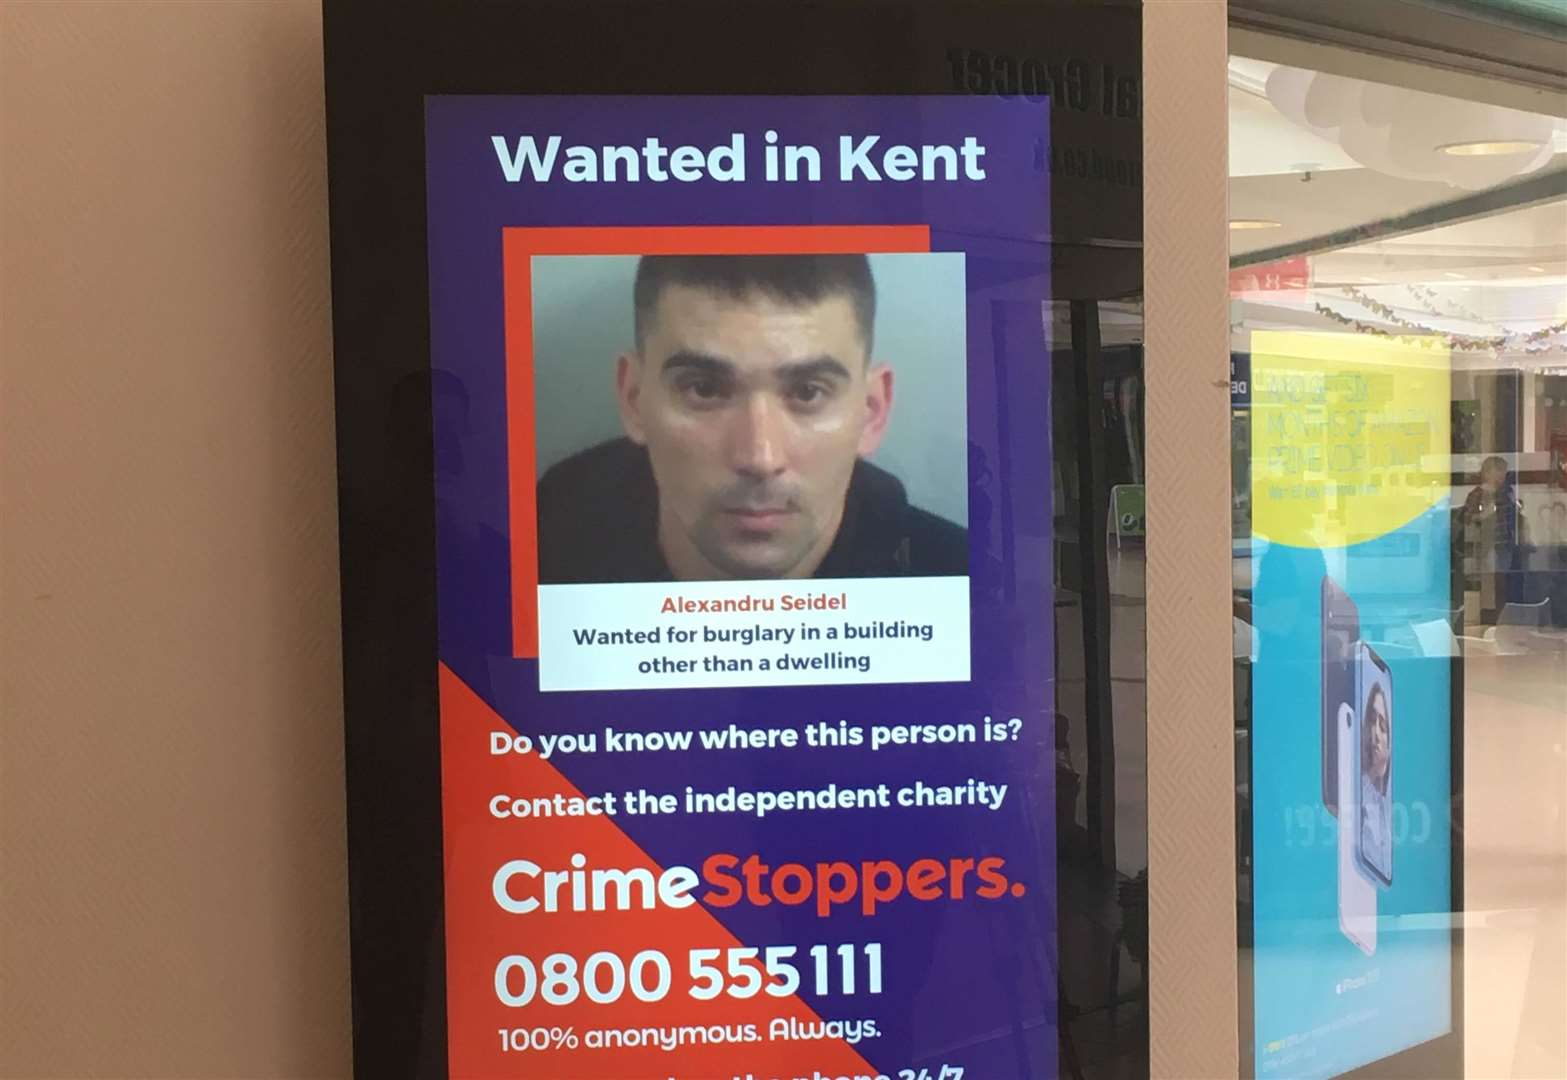 Images of suspects on display in town centre